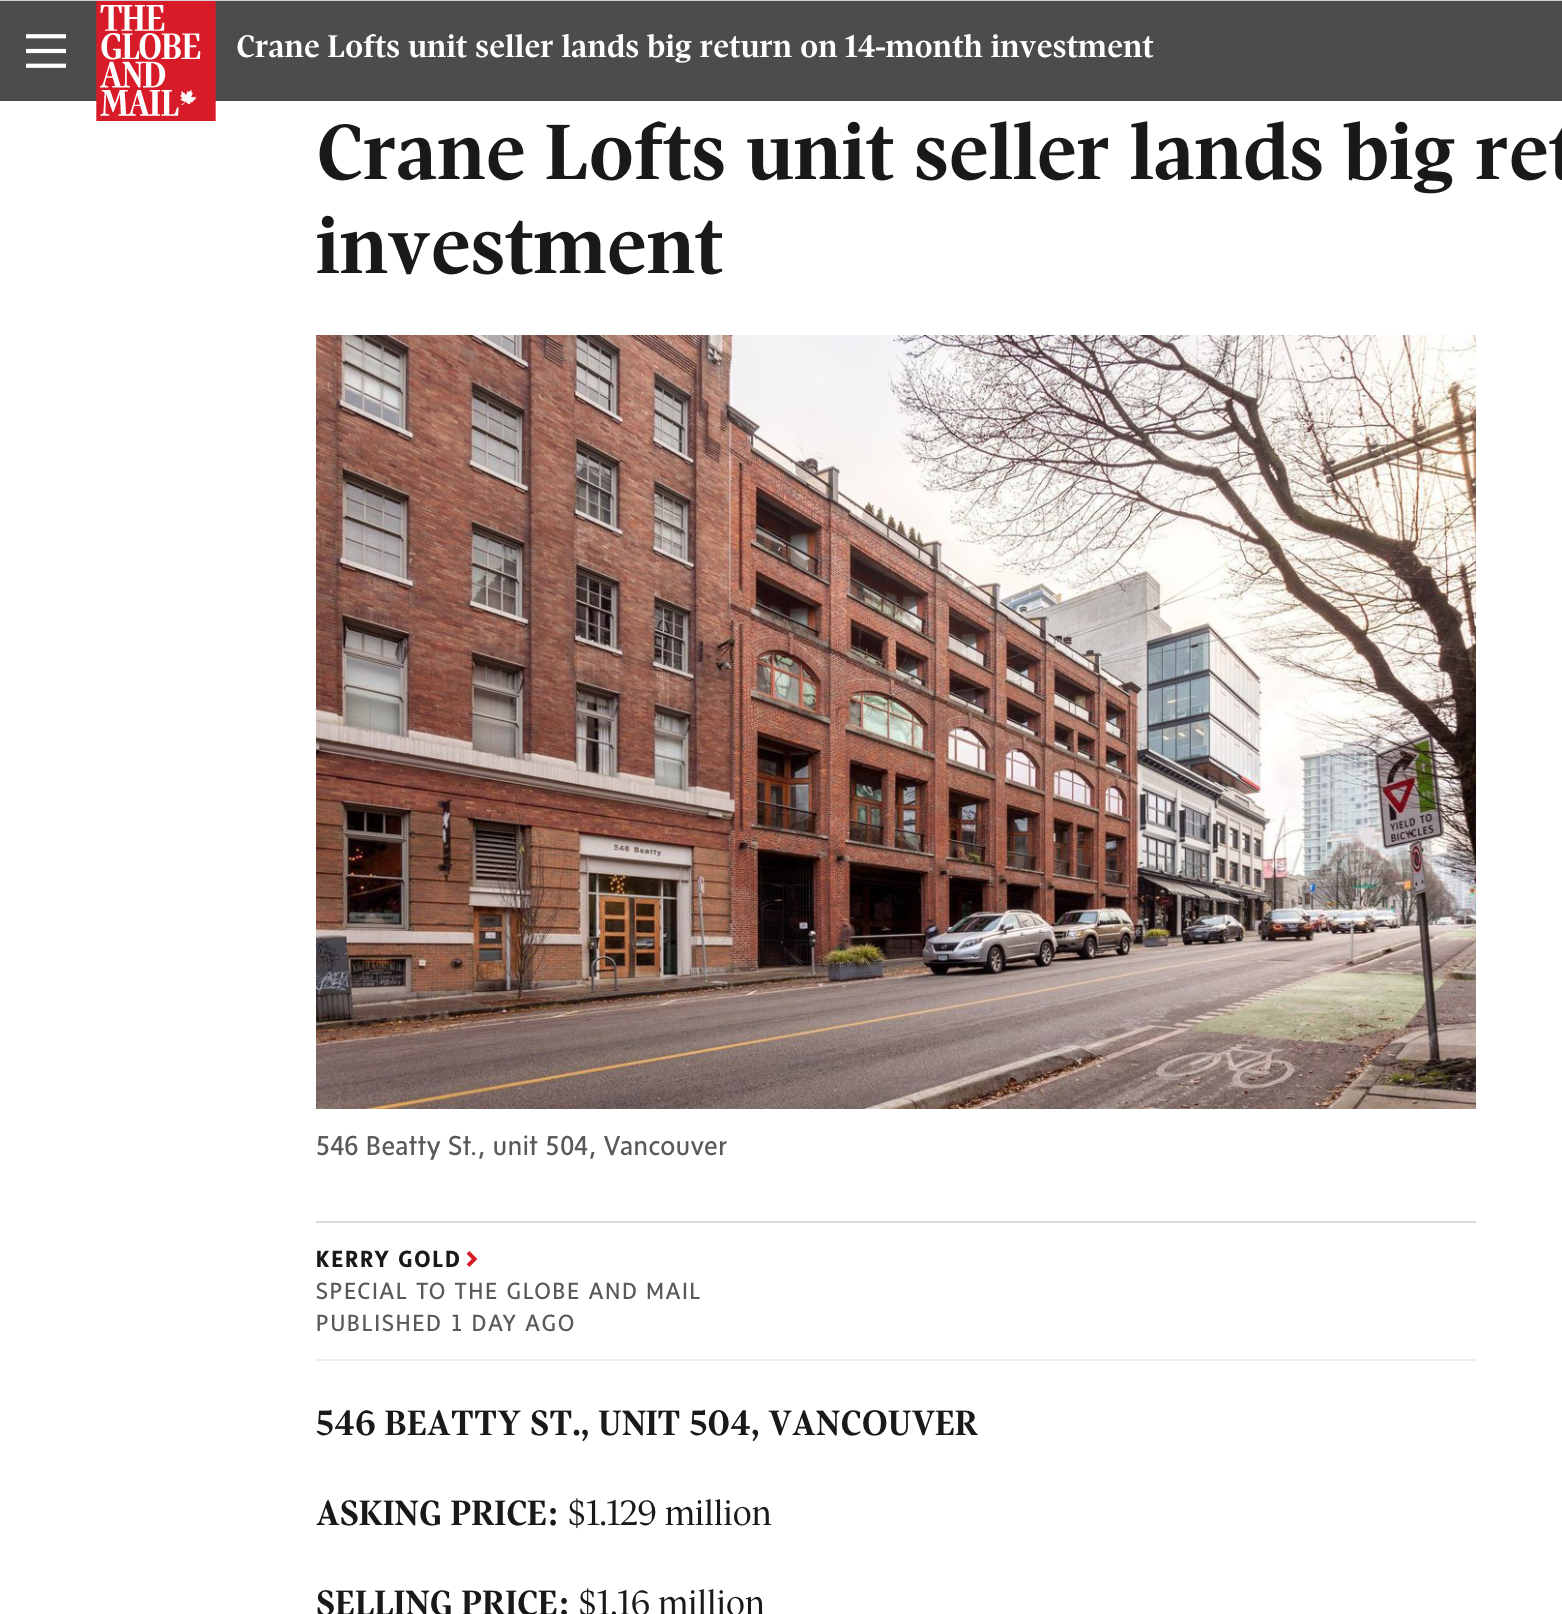 crane lofts globe and mail 546 beatty st